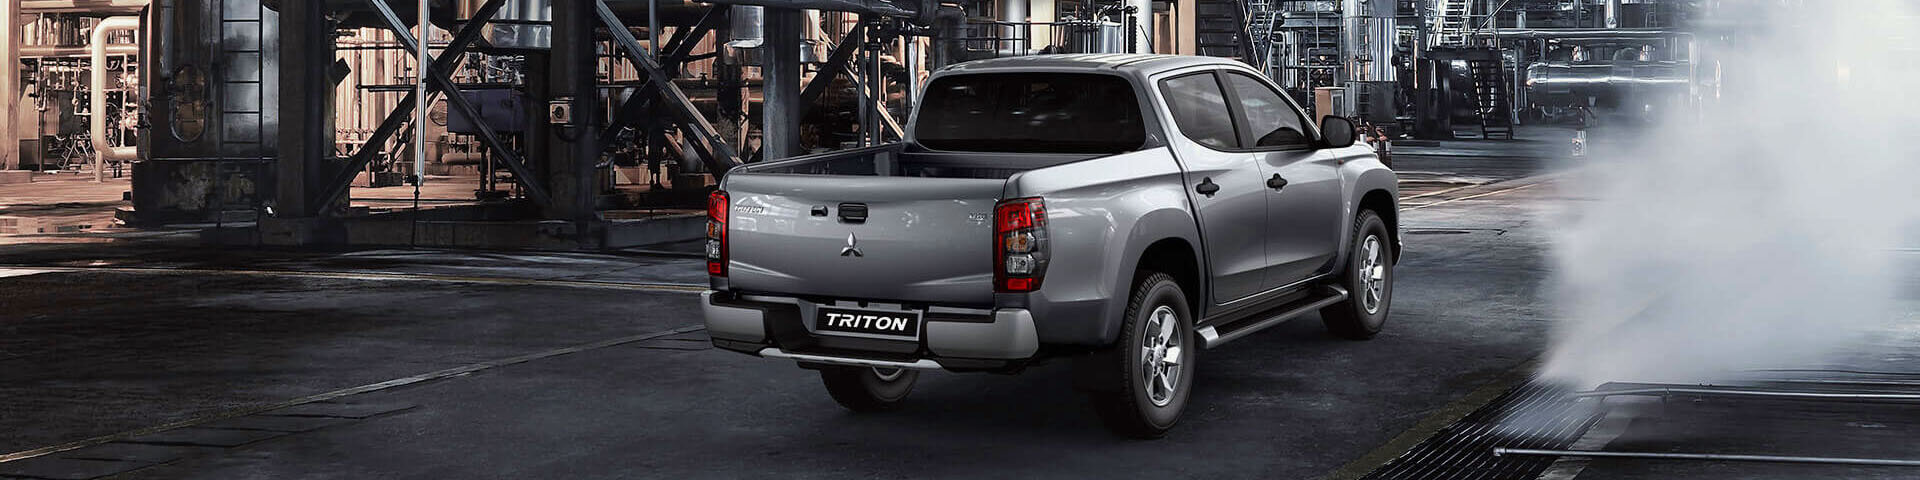 Rear view of a Mitsubishi Triton dual cab ute in silver.